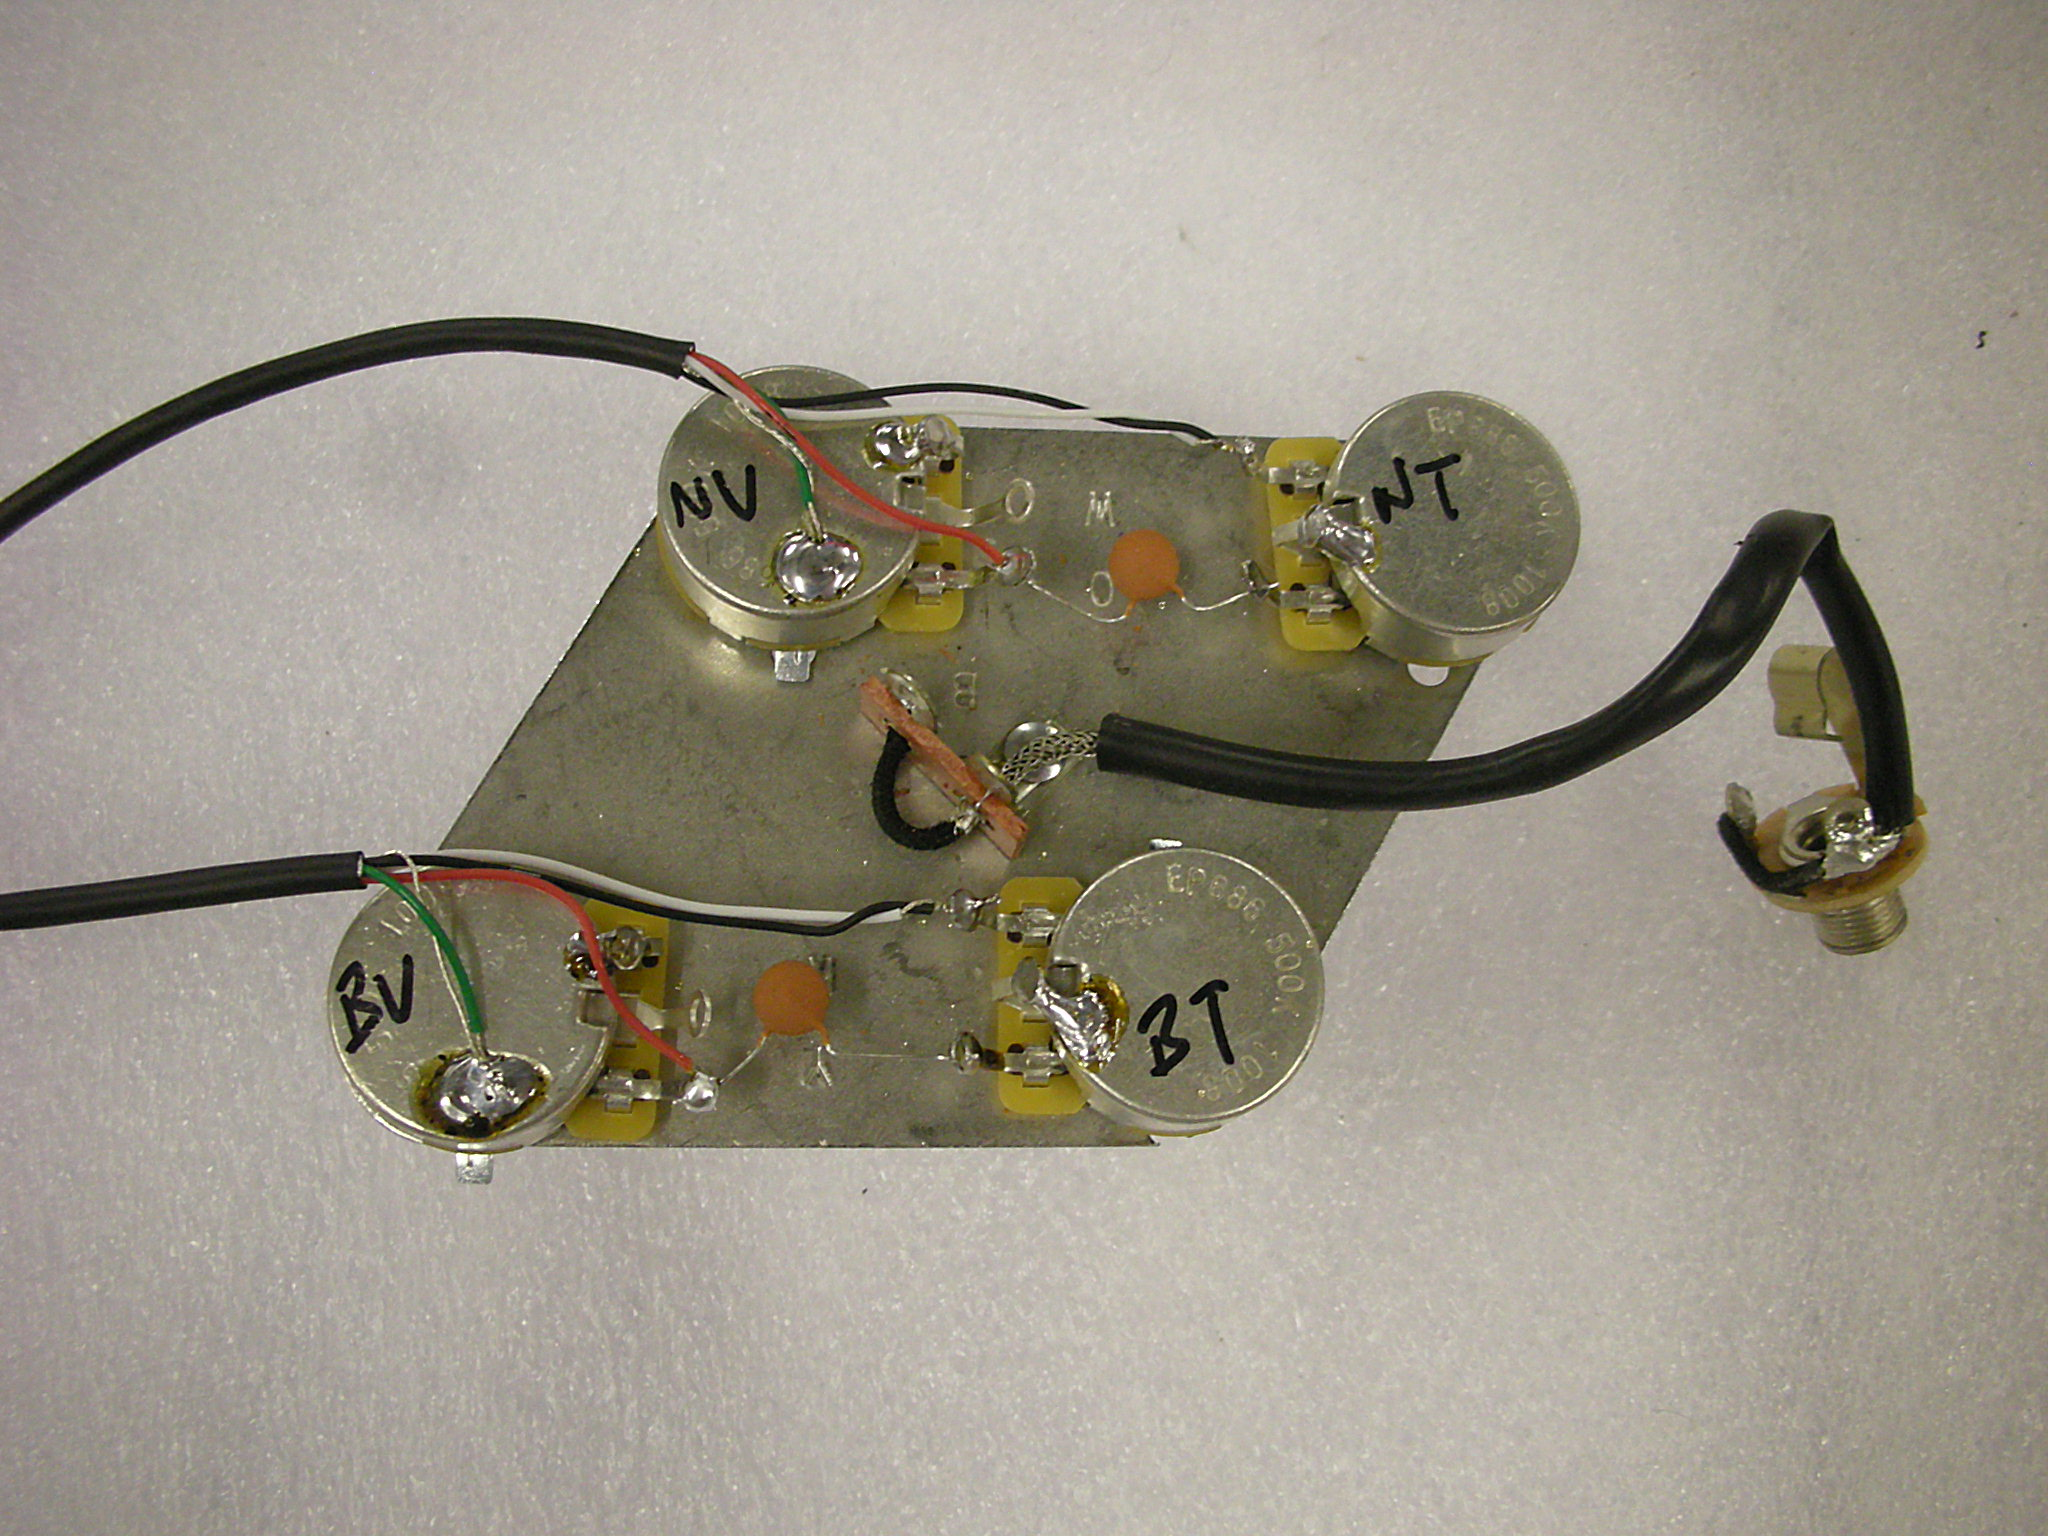 gibson les paul guitar wiring diagram images gibson les paul guitar wiring diagram nash les paul style wiring